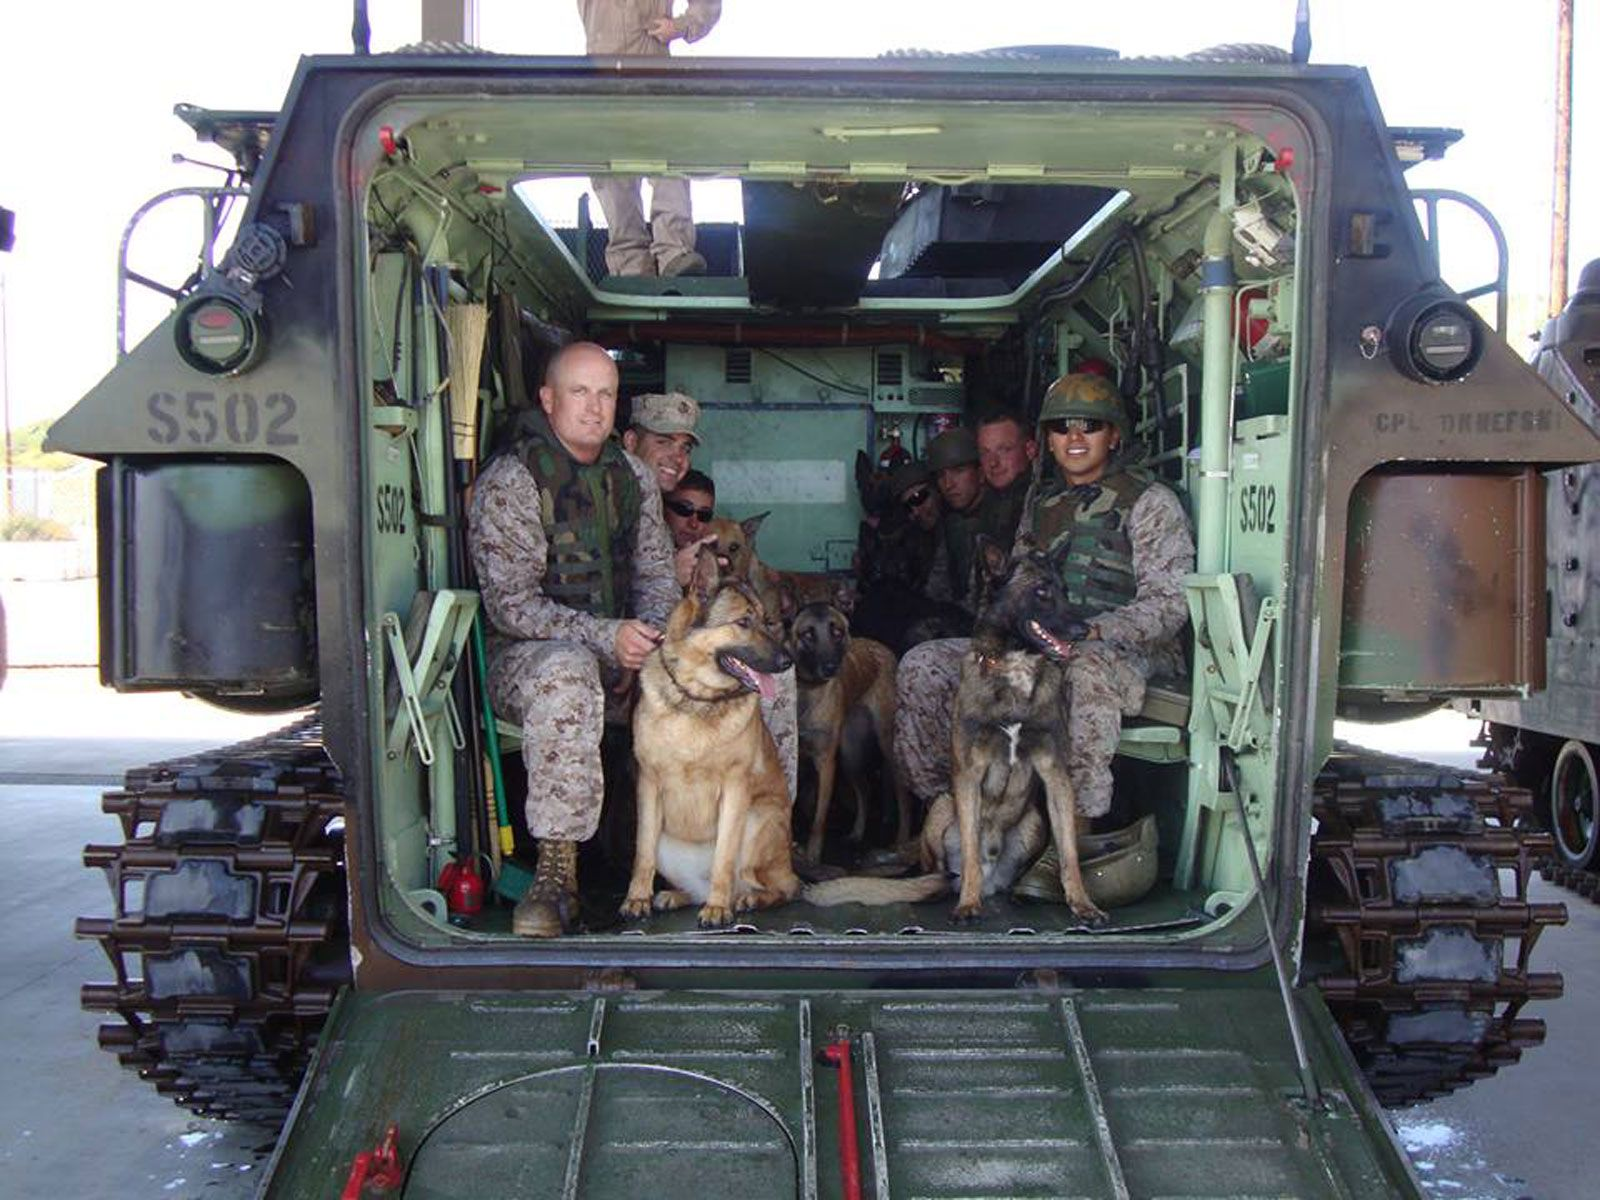 Parade's cover story this weekend, an excerpt from the forthcoming book Top Dog, tells the story of Lucca, a German Shepherd-Belgian Malinois mix who led special forces soldiers onto a battlefield in Afghanistan's Helmand River Valley in March of 2012 and lost her left front leg in an IED explosion. Here, a few images that [...]